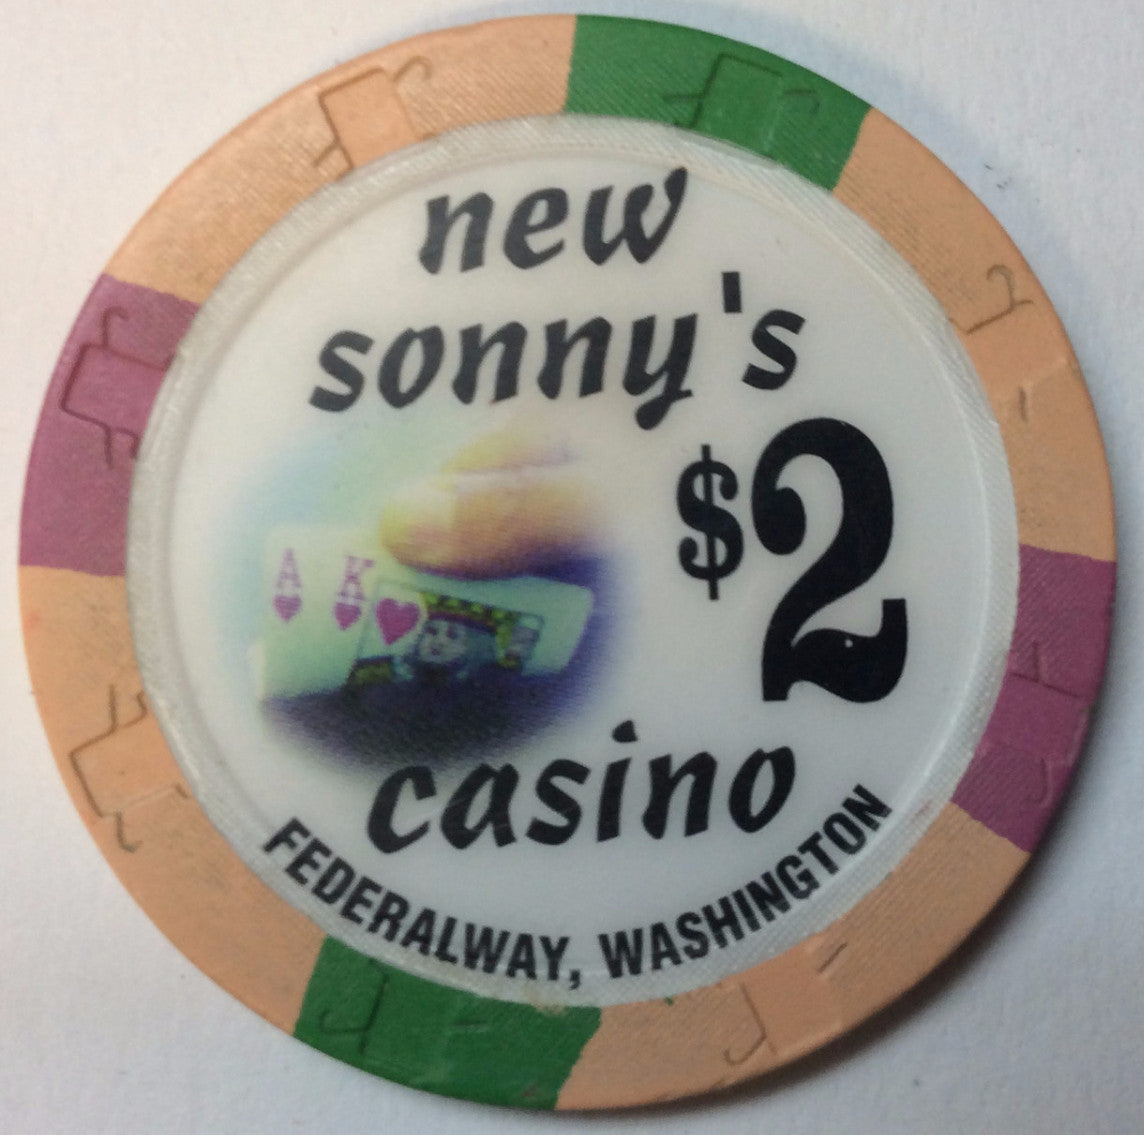 New Sonny's Casino $2 Chip Washington - Spinettis Gaming